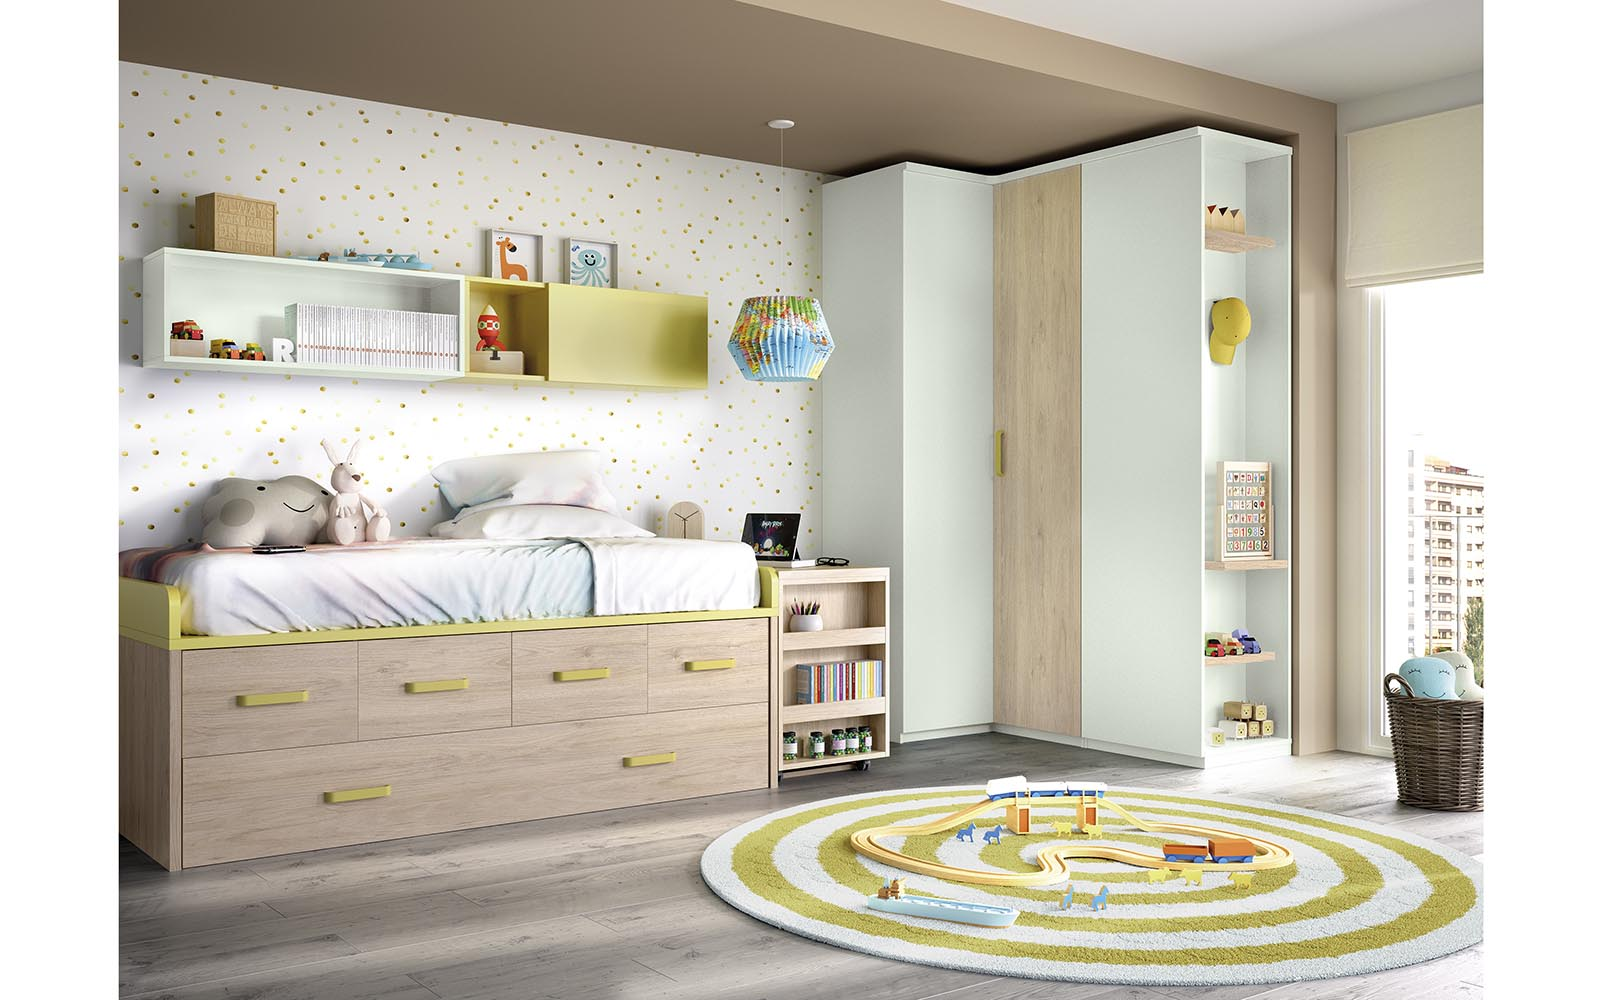 wooden kids bed with green details and space on the bottom, krevati morou xilino me prasines leptomeries,